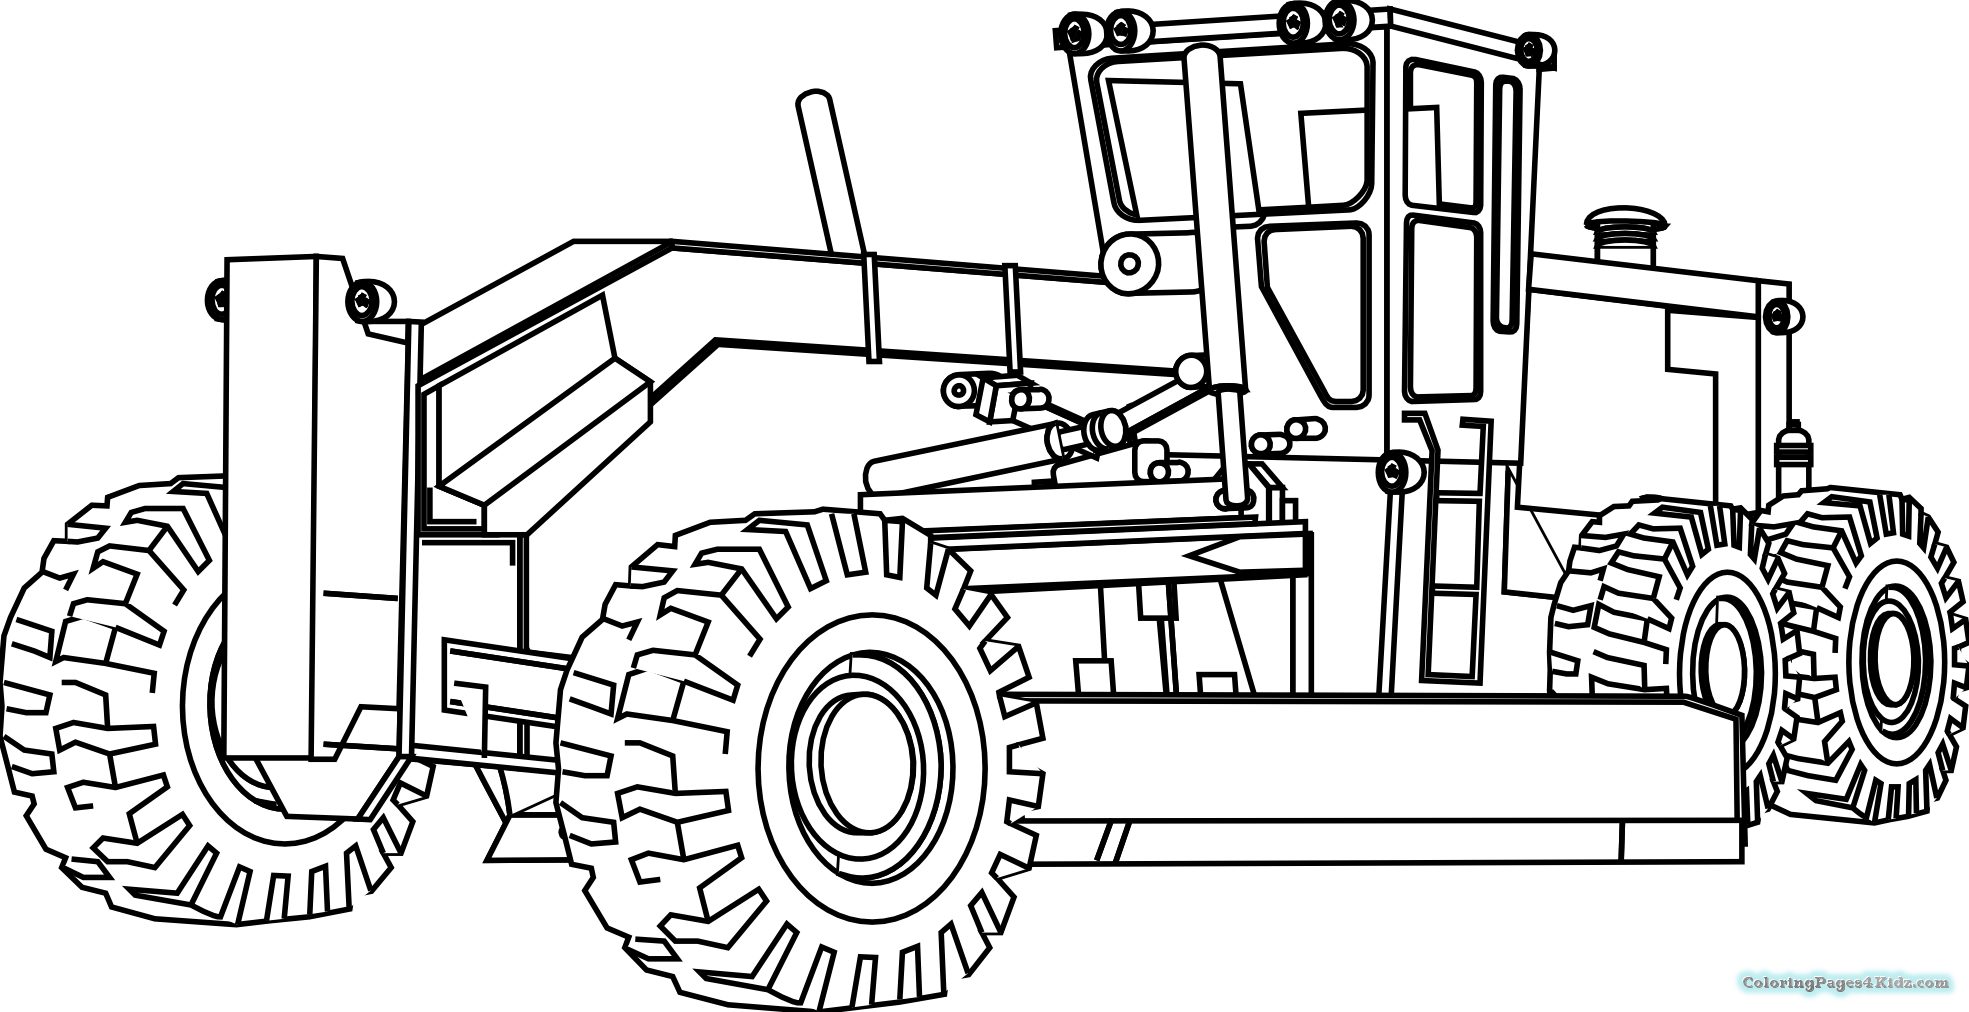 free printable tractor coloring pages free printable tractor coloring pages for kids free coloring tractor printable pages